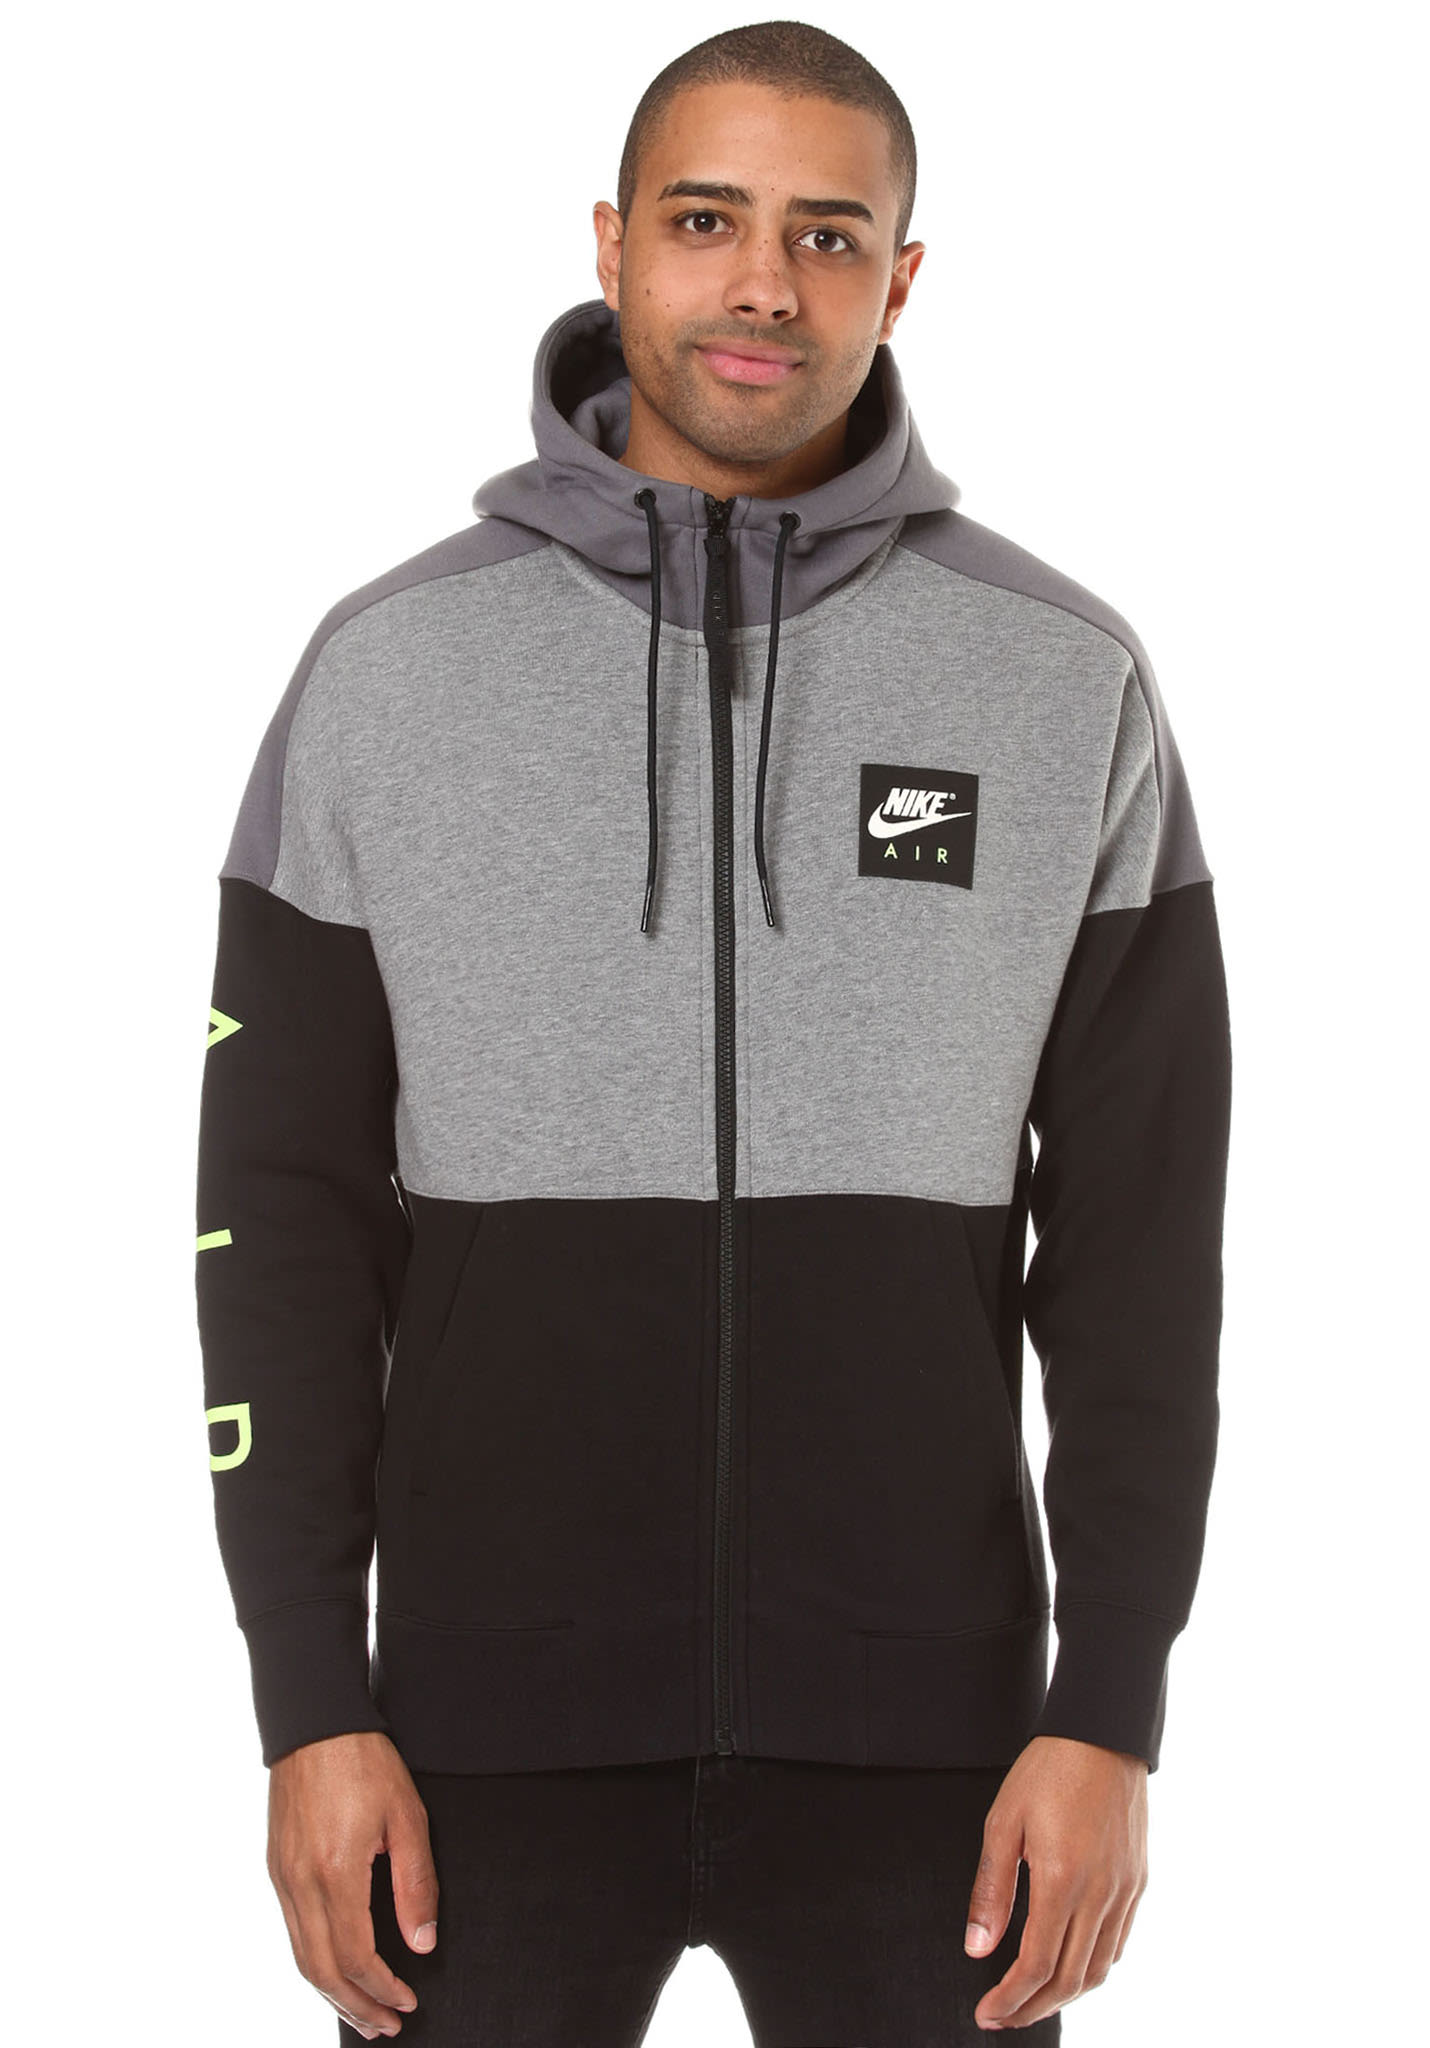 Nike Sportswear Air Fleece Hooded Jacket For Men Black Planet Jaket Abyss Dark Sports